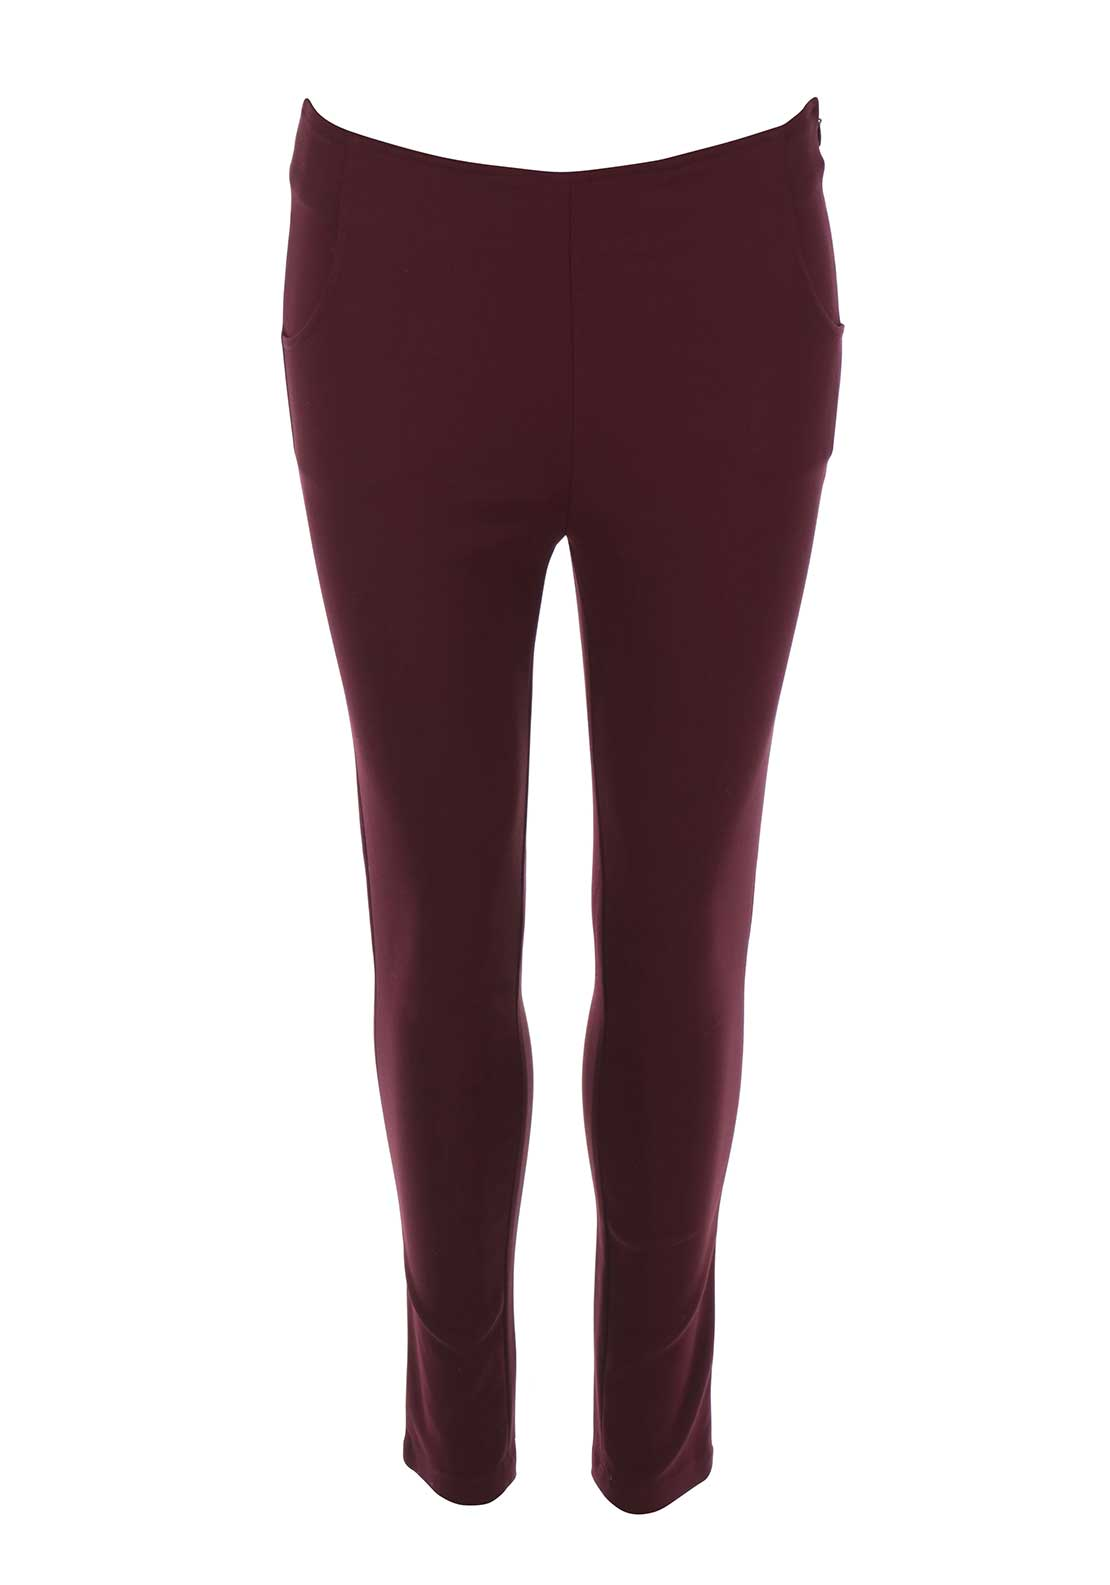 FRNCH High Waist Skinny 7/8 Trousers, Wine